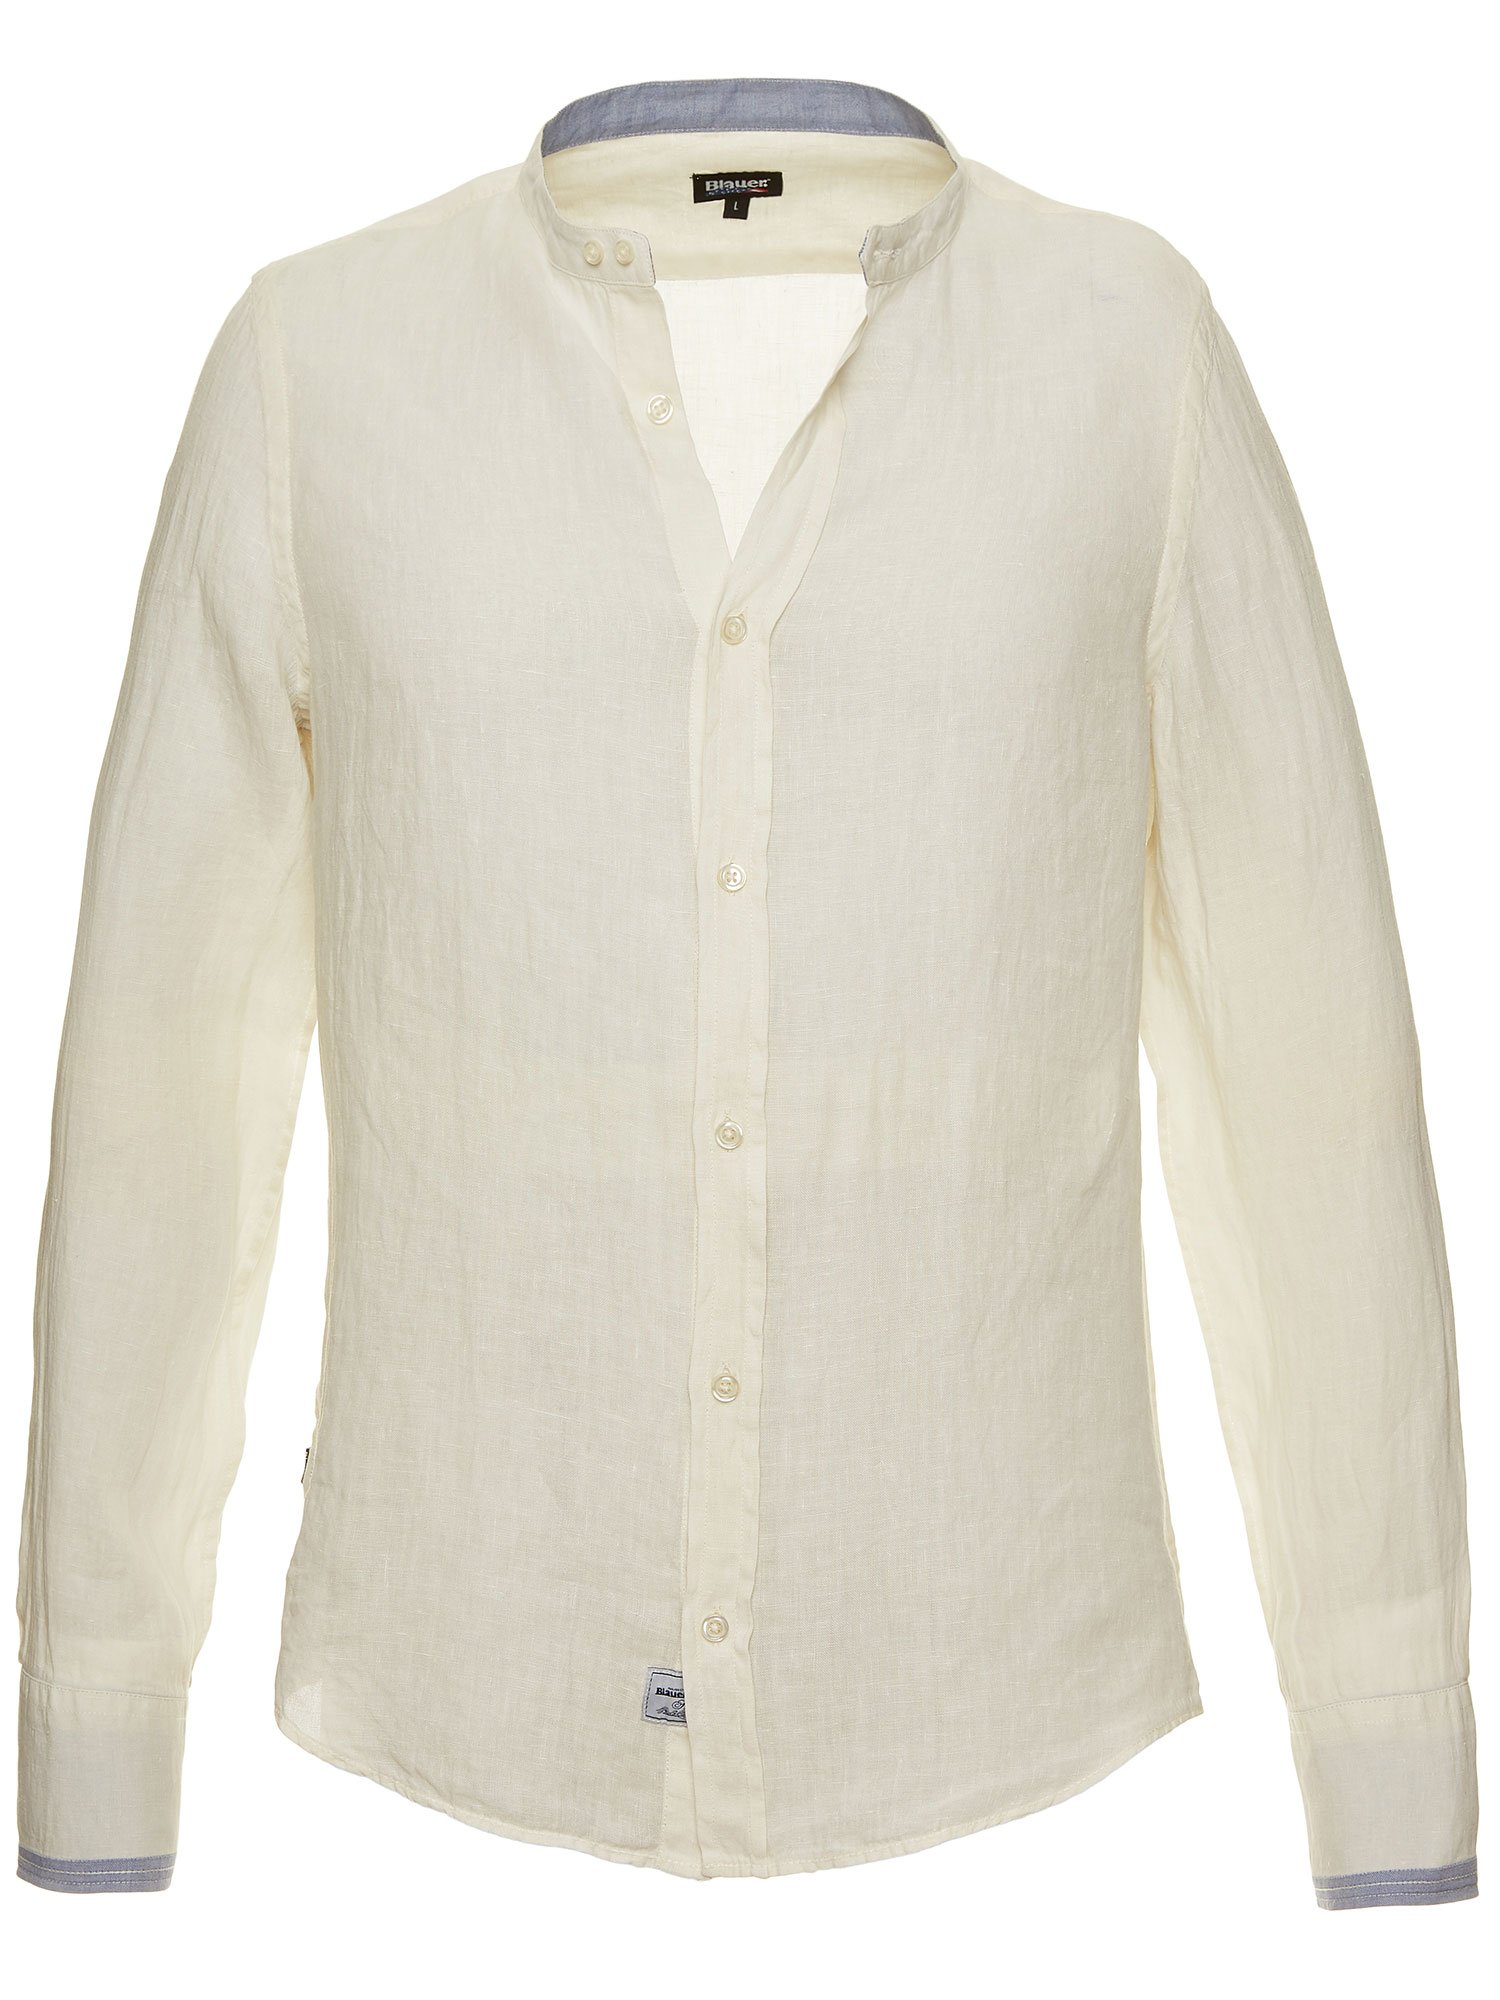 LINEN COTTON SHIRT - Blauer